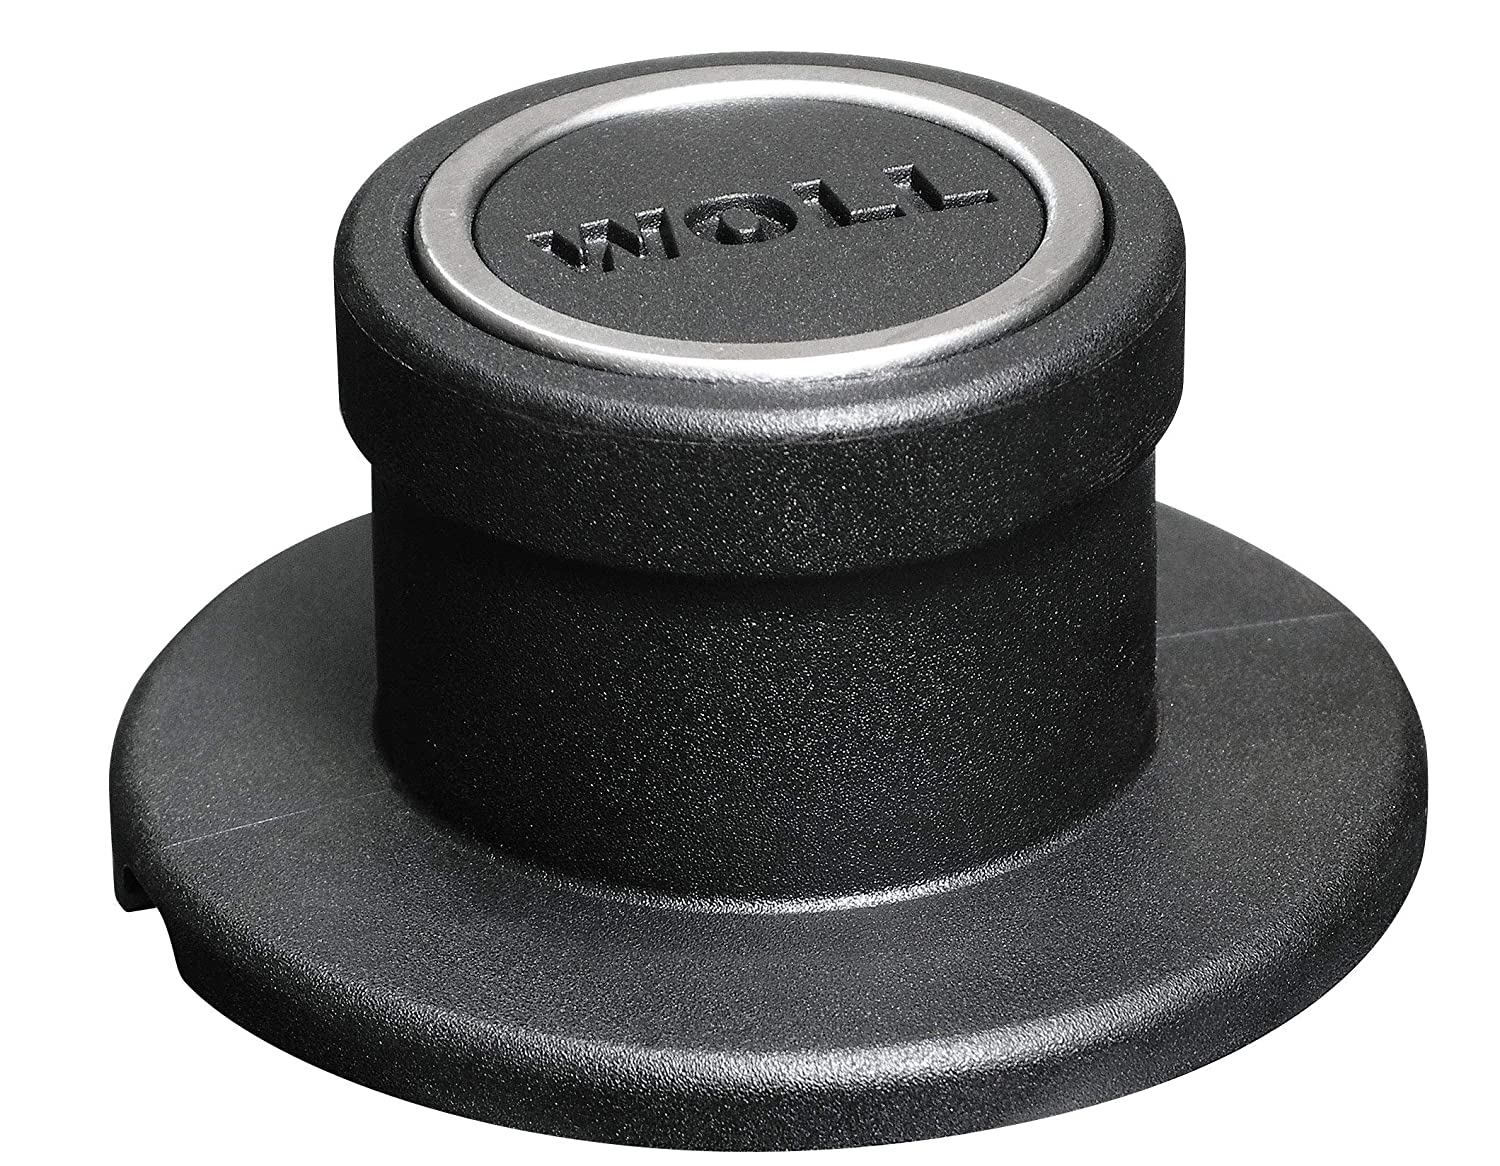 Woll Tempered Glass with Stainless Steel Rim and Vented Knob Round Lid Clear 8 WS20M 8